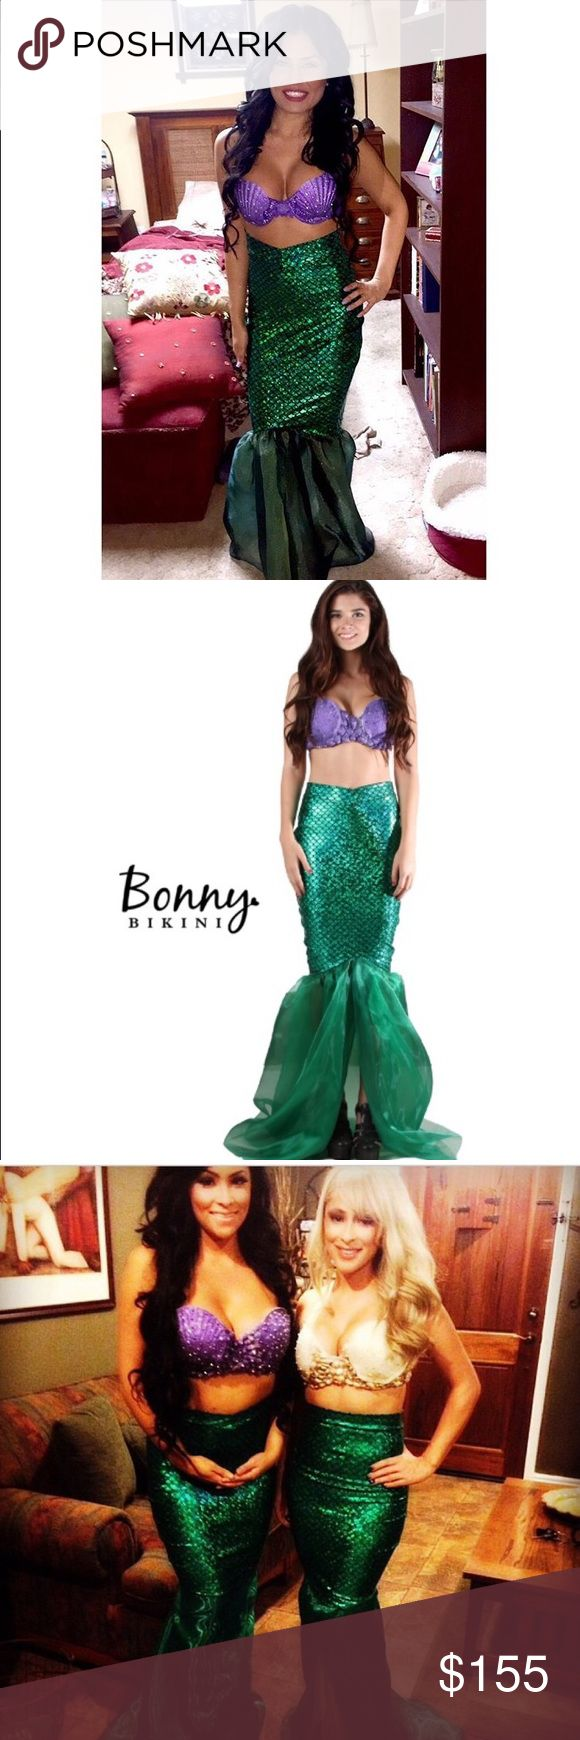 Beautiful Kim Kardashian Inspired Mermaid Costume Stand out this Halloween with a purple bra style top adorned in multi-colored Swarovski crystals. The skirt is a green scaled metallic high-waisted skirt with a chiffon bottom. The top of the skirt is a v band. The top is a padded bra size 34c with adjustable straps while the bottom is extra small. Bonnie Bikini Other